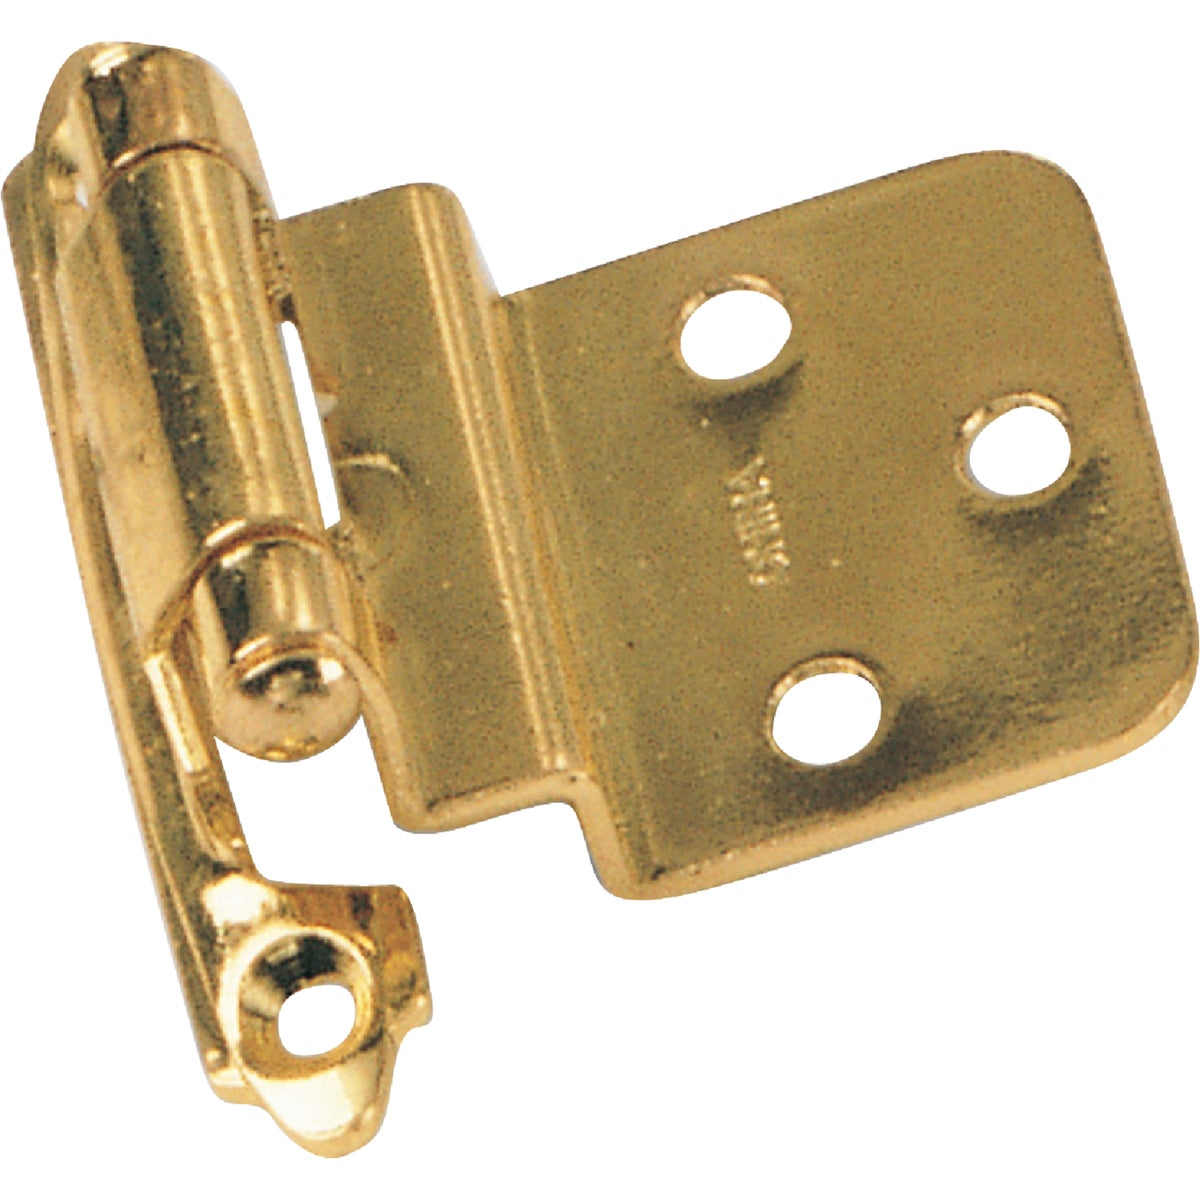 PB HINGE - 28637 by Laurey Co